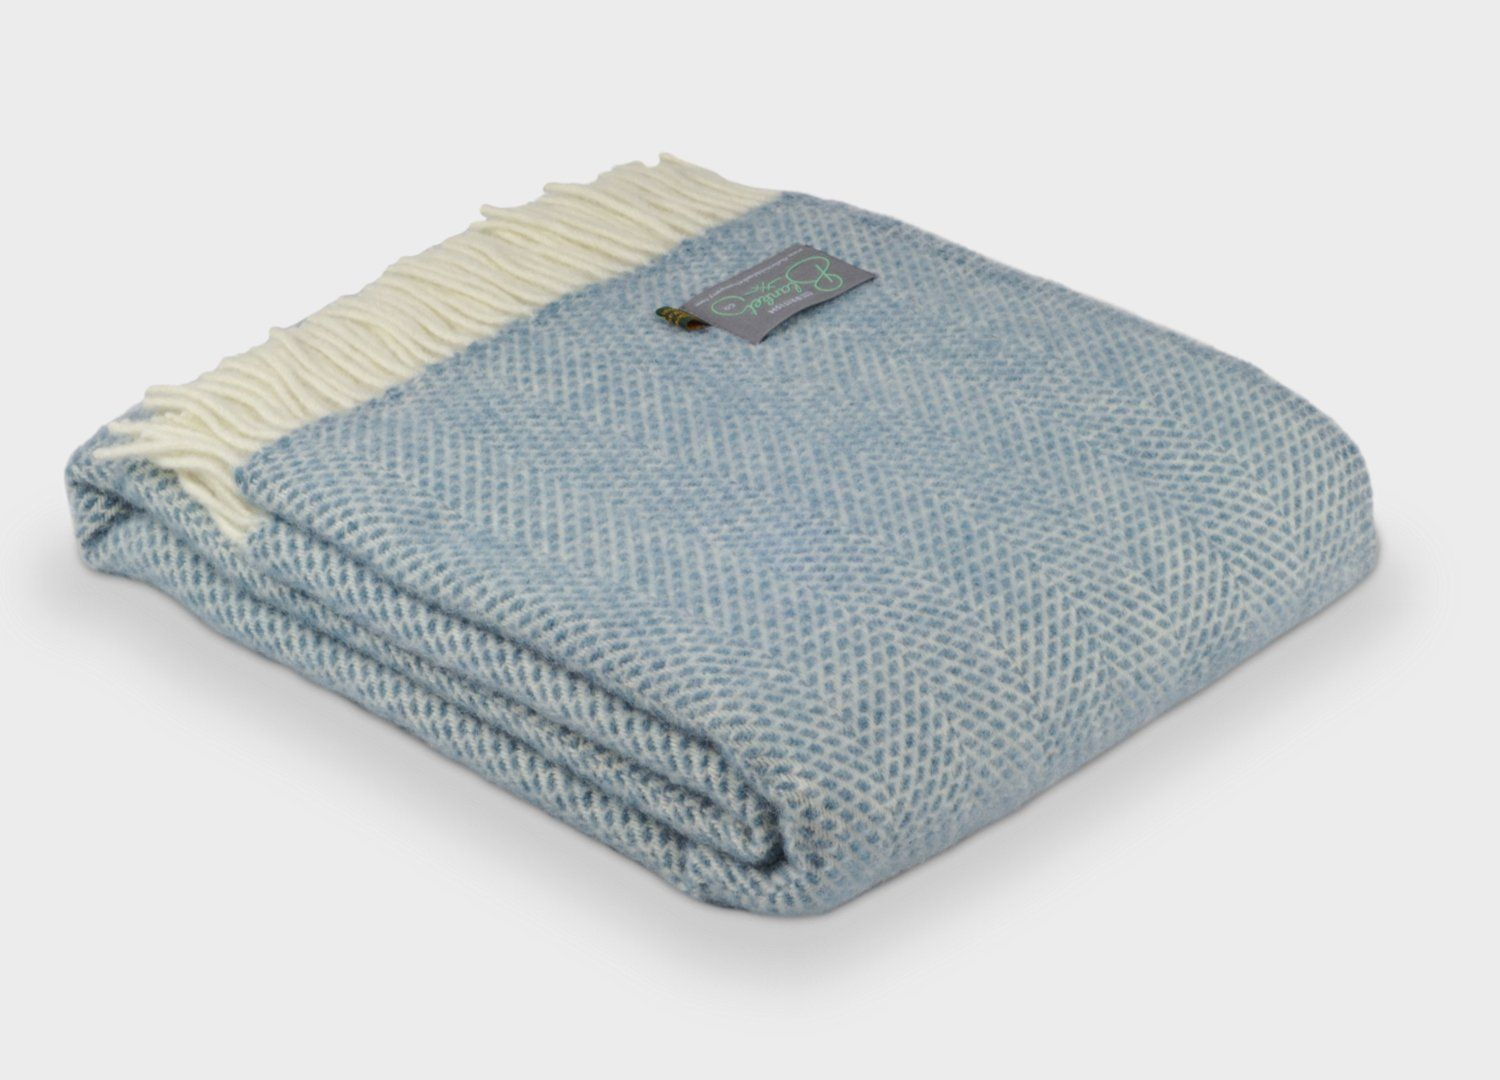 735ecf667a Petrol Blue Beehive Throw - The British Blanket Company